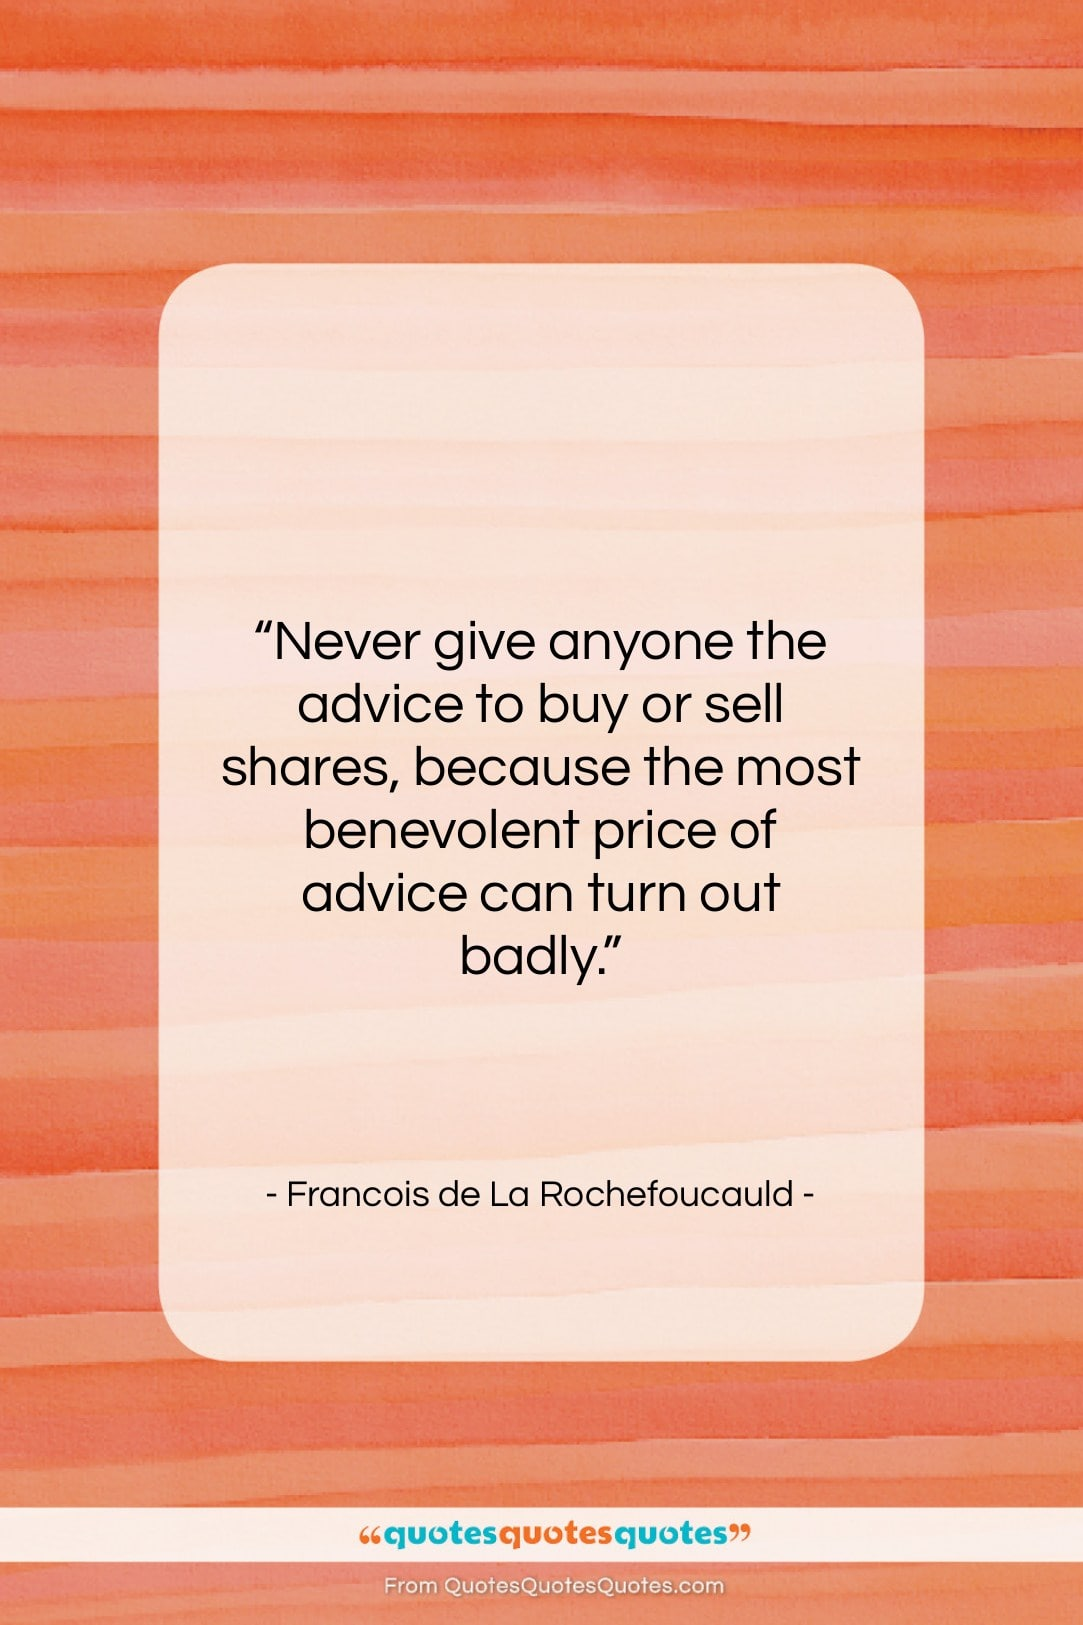 """Francois de La Rochefoucauld quote: """"Never give anyone the advice to buy…""""- at QuotesQuotesQuotes.com"""